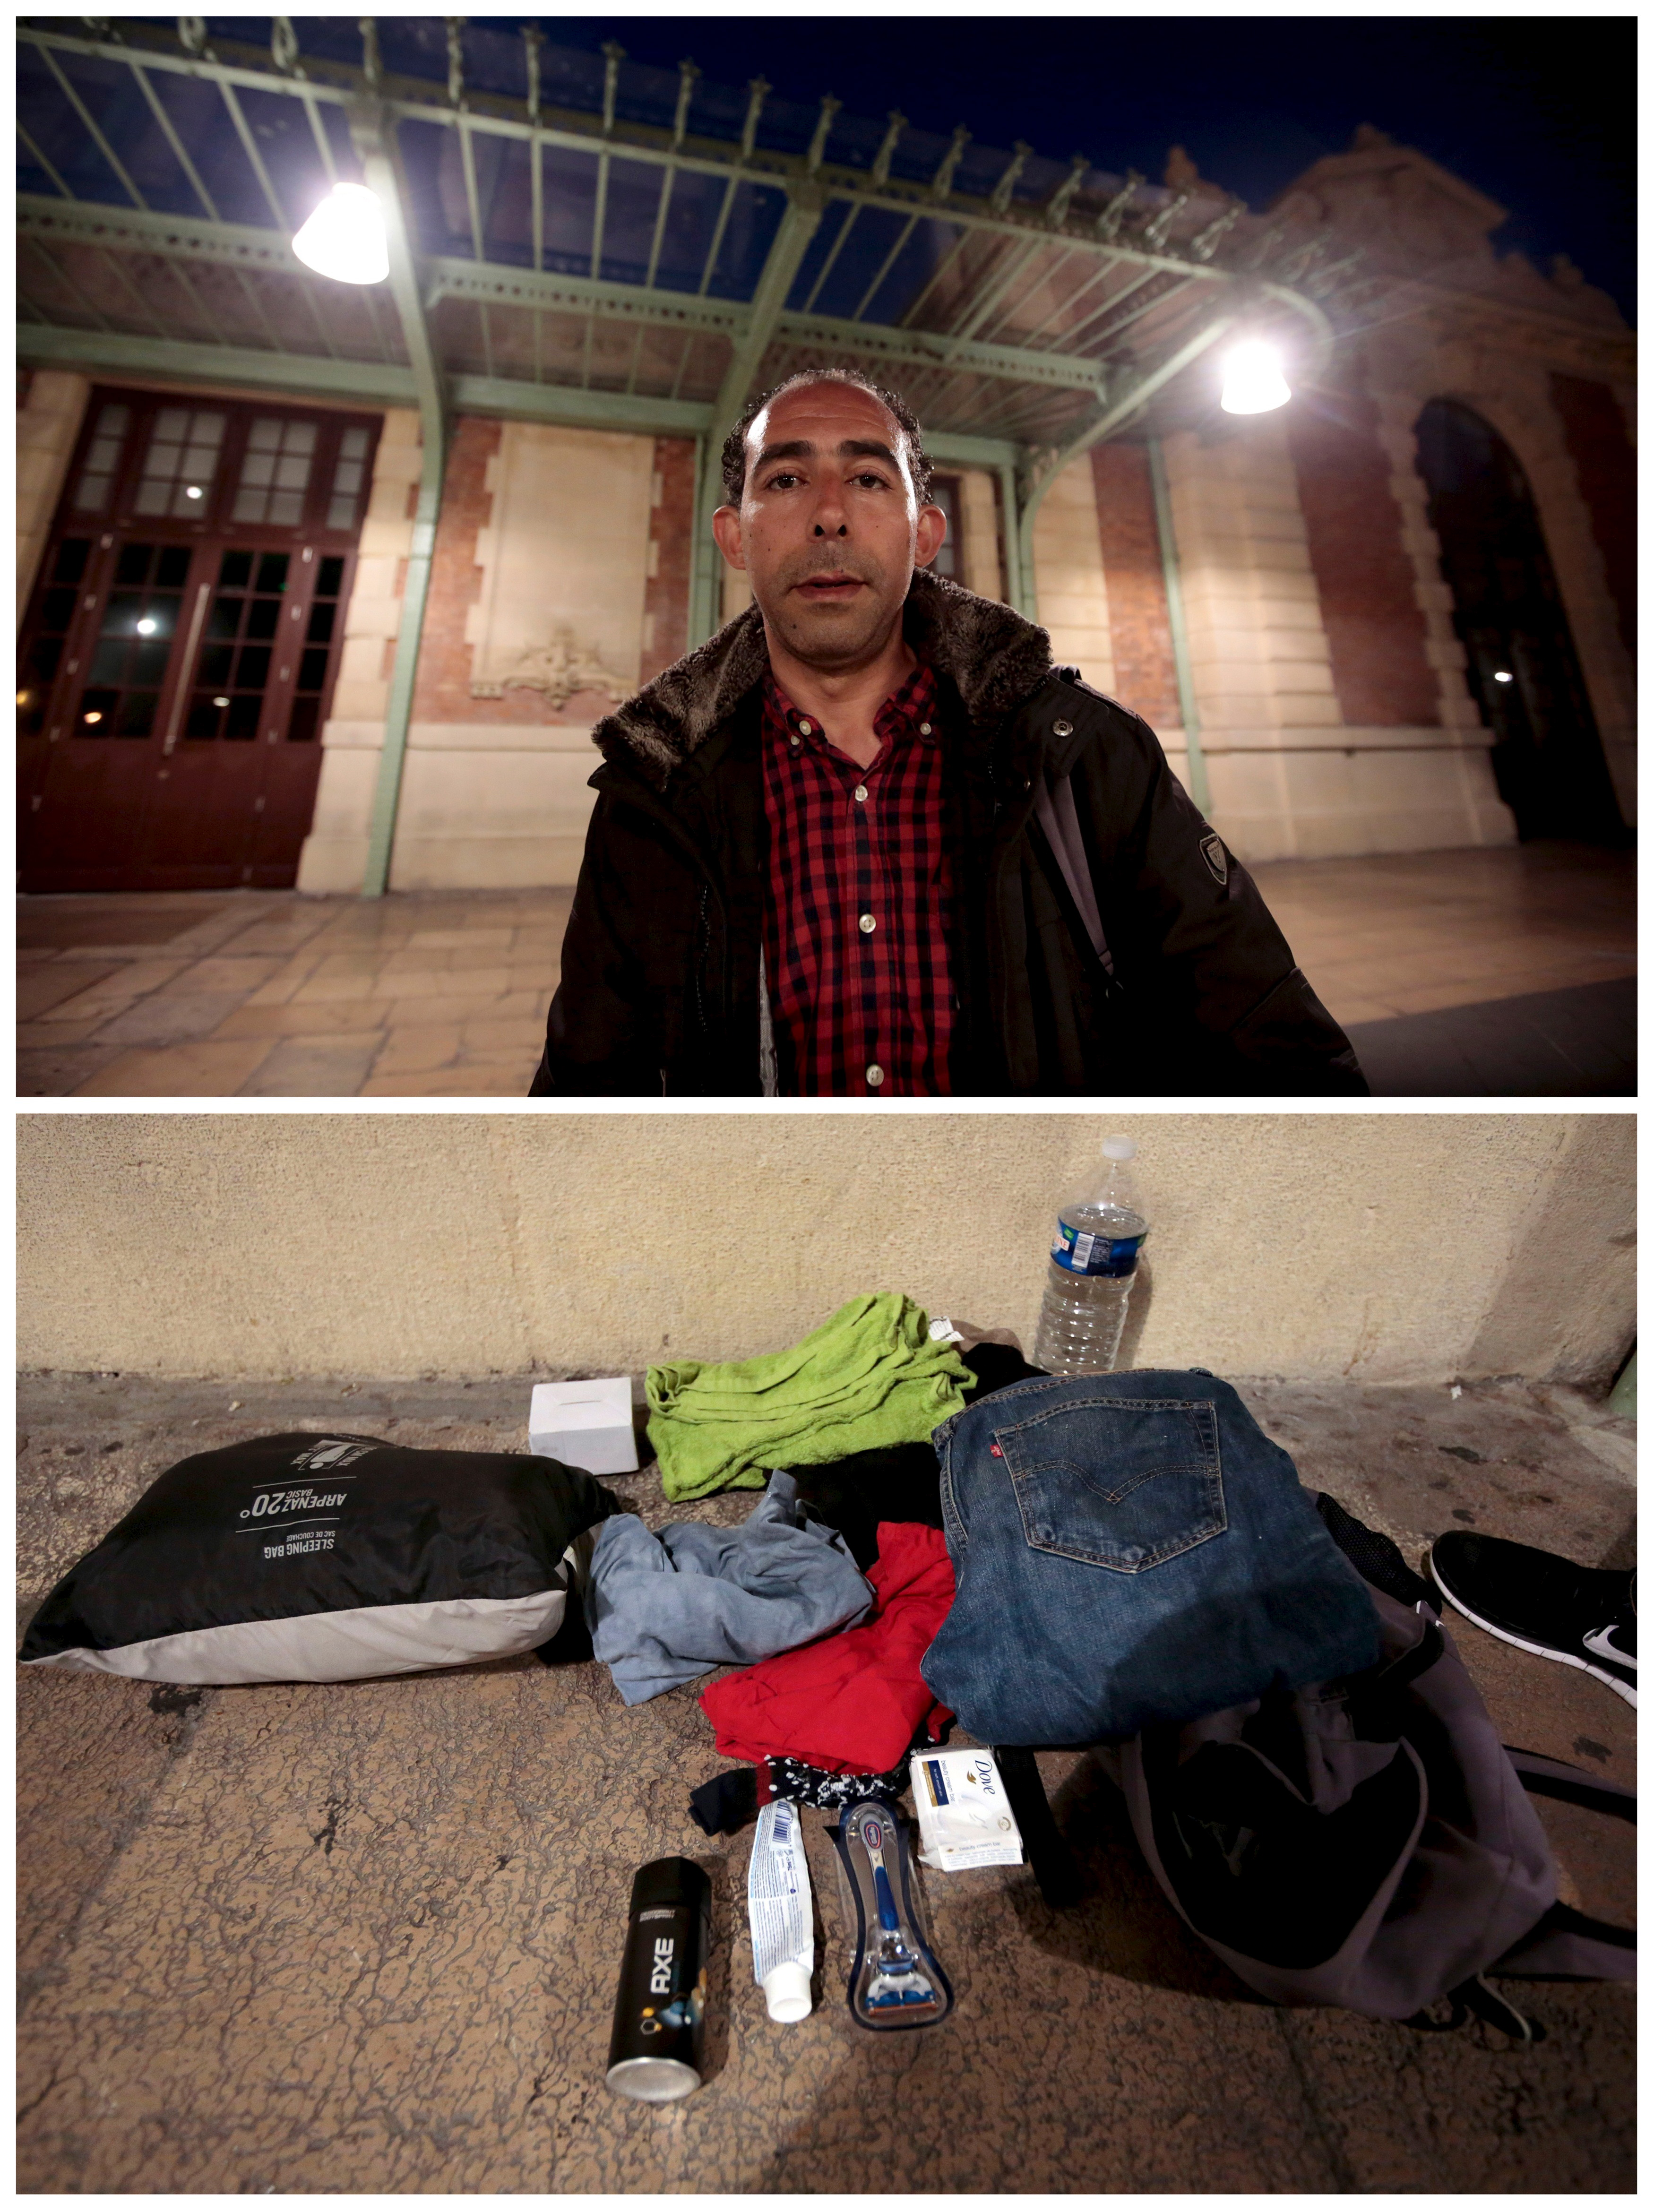 Libyan migrant Icham El Korati, 38, and his belongings at the railway station in Nice, France, on June 3, 2015. El Korati was a taxi driver and owner of a coffee bar in Misrata, but he left his country in March 2011 because of war. Photo by Eric Gaillard/Reuters